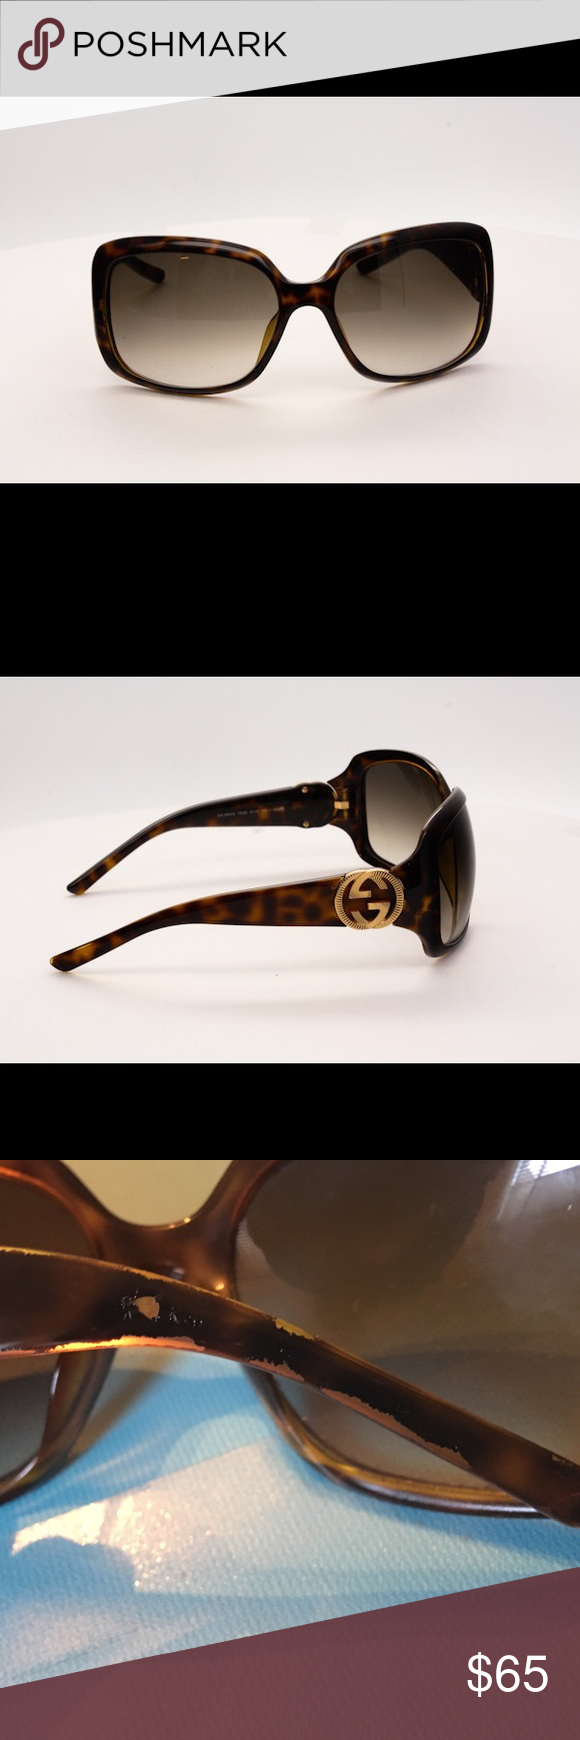 Gucci sunglasses with accessories. Gucci sunglasses.                                                  Tortoise Shell Frame Gradient Tint GG Logo Sunglasses-3164/S Gucci Accessories Sunglasses